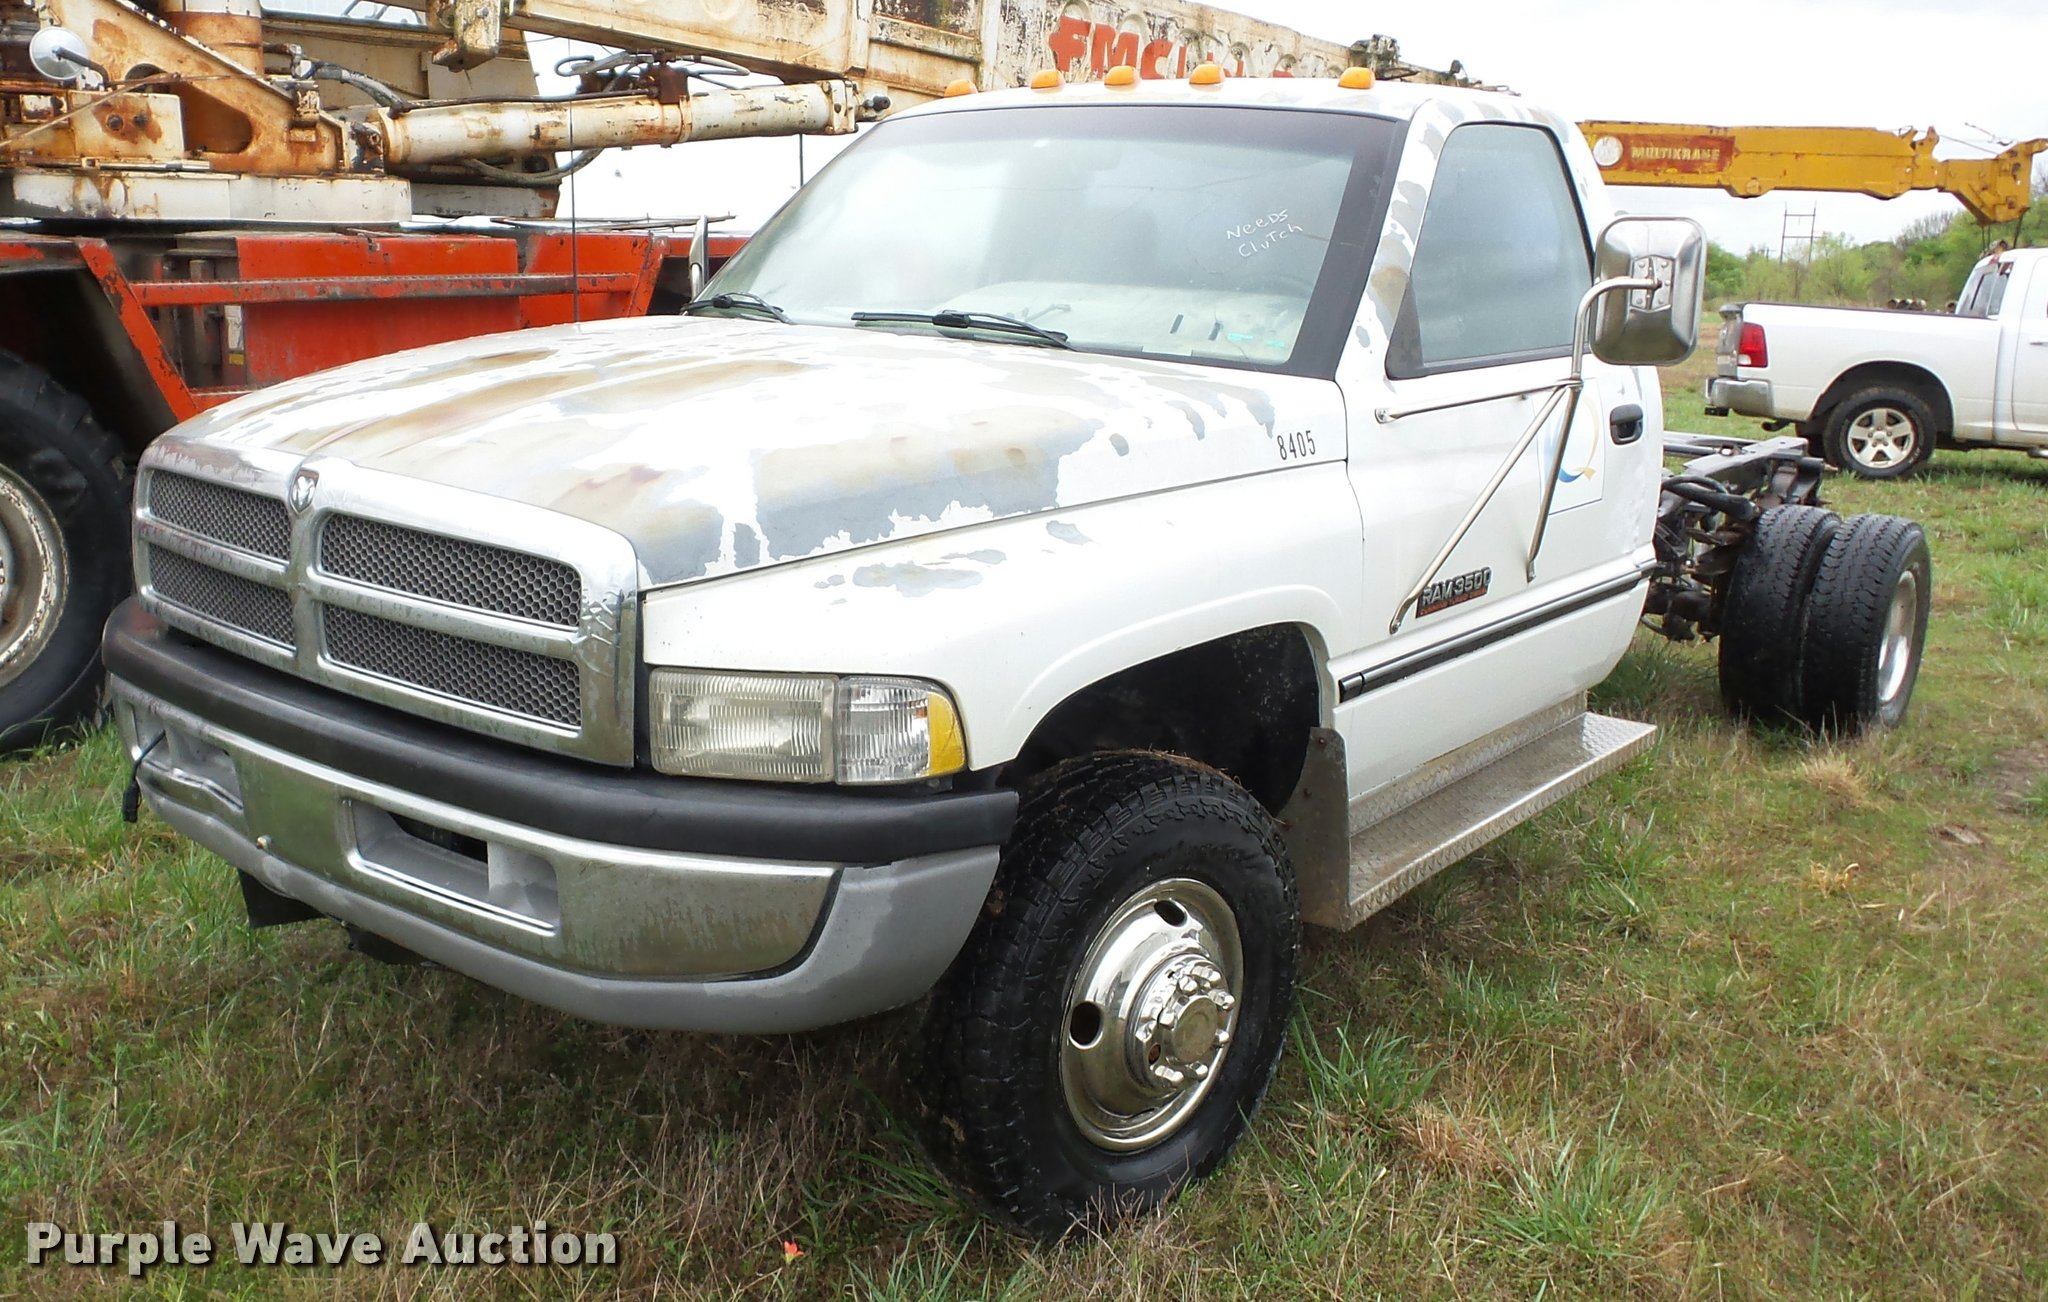 1997 Dodge Ram 3500 Pickup Truck Cab And Chassis Item Bz97 Fuel Filter Location Full Size In New Window